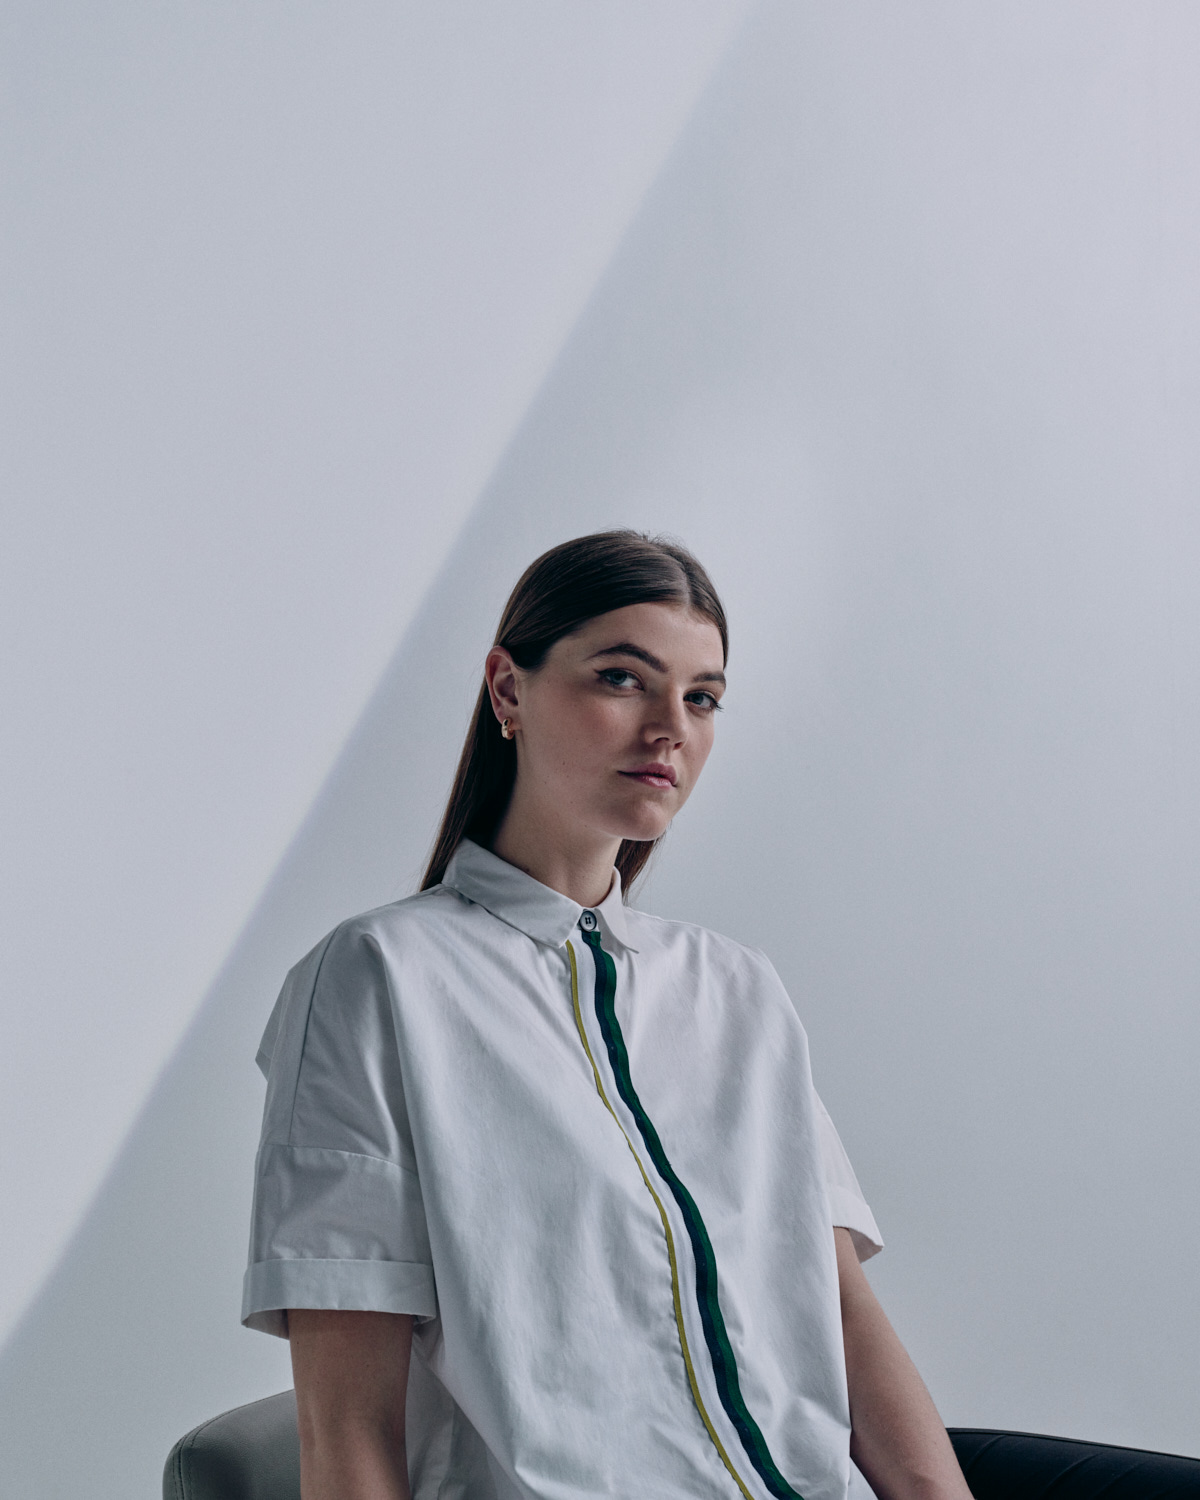 Young woman, white shirt, grey backdrop, diagonal line by London portrait photographer Tim Cole